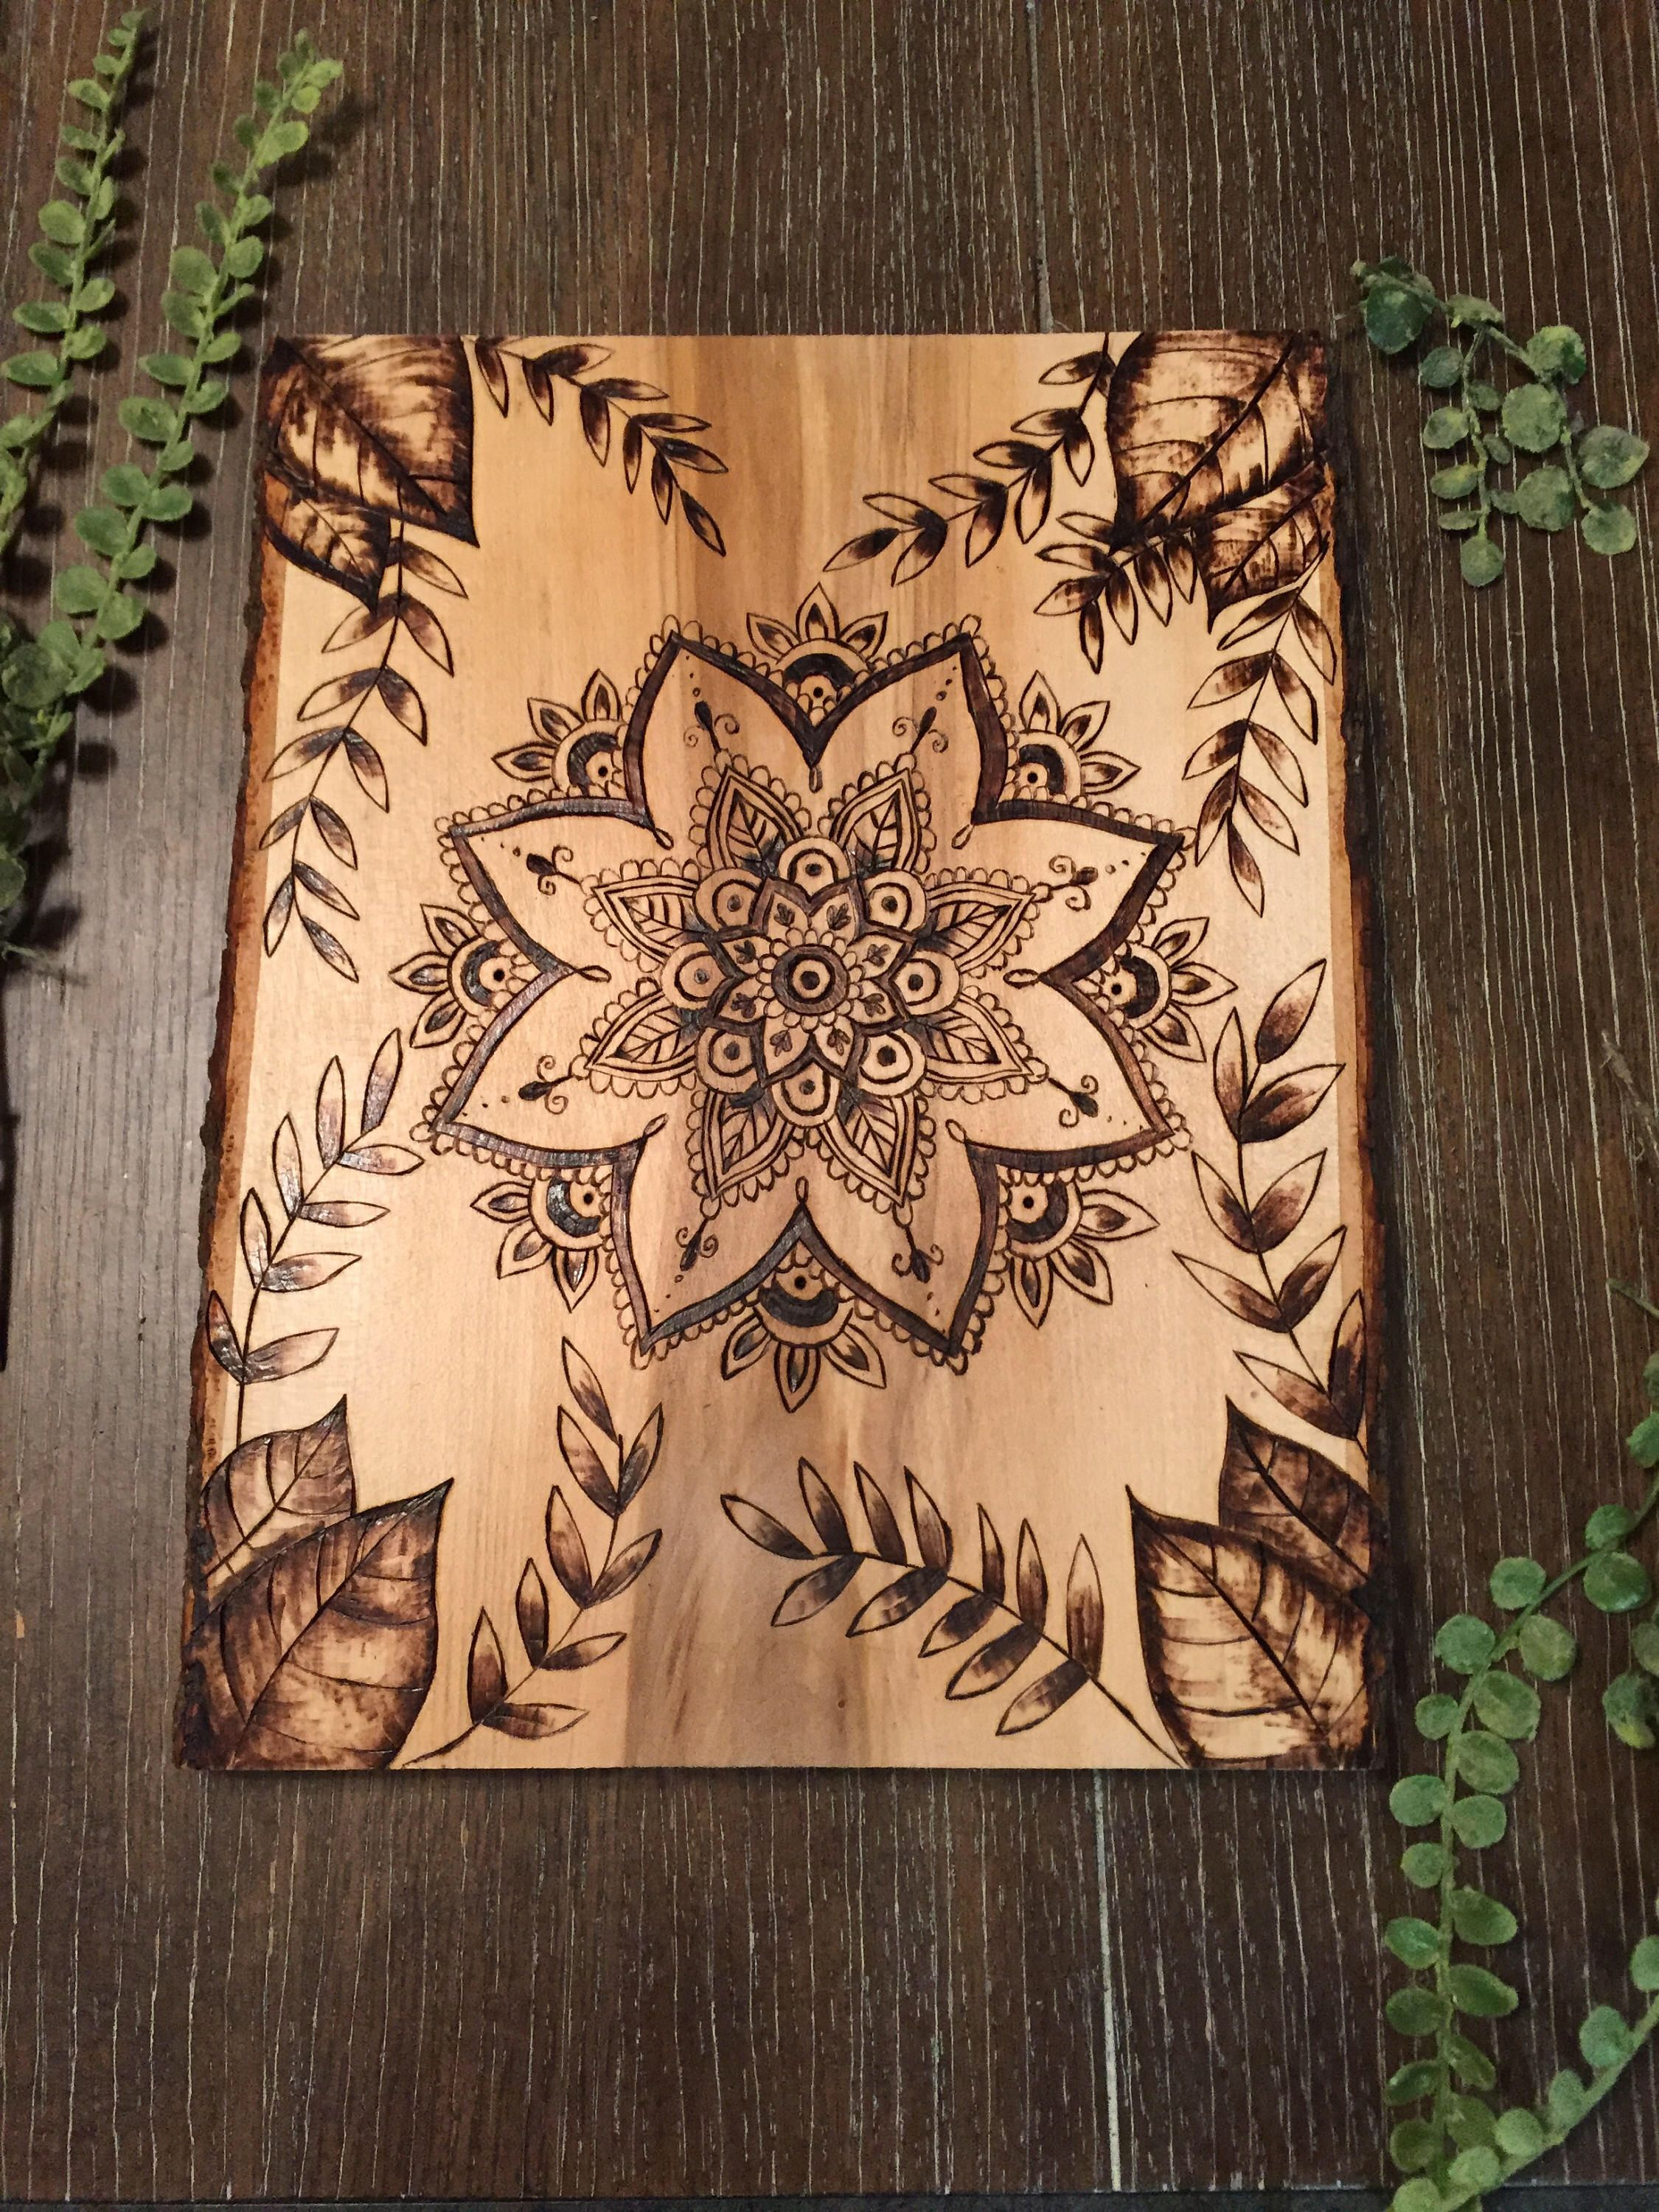 mandala wood burning art, pyrography leaves | holz brennen